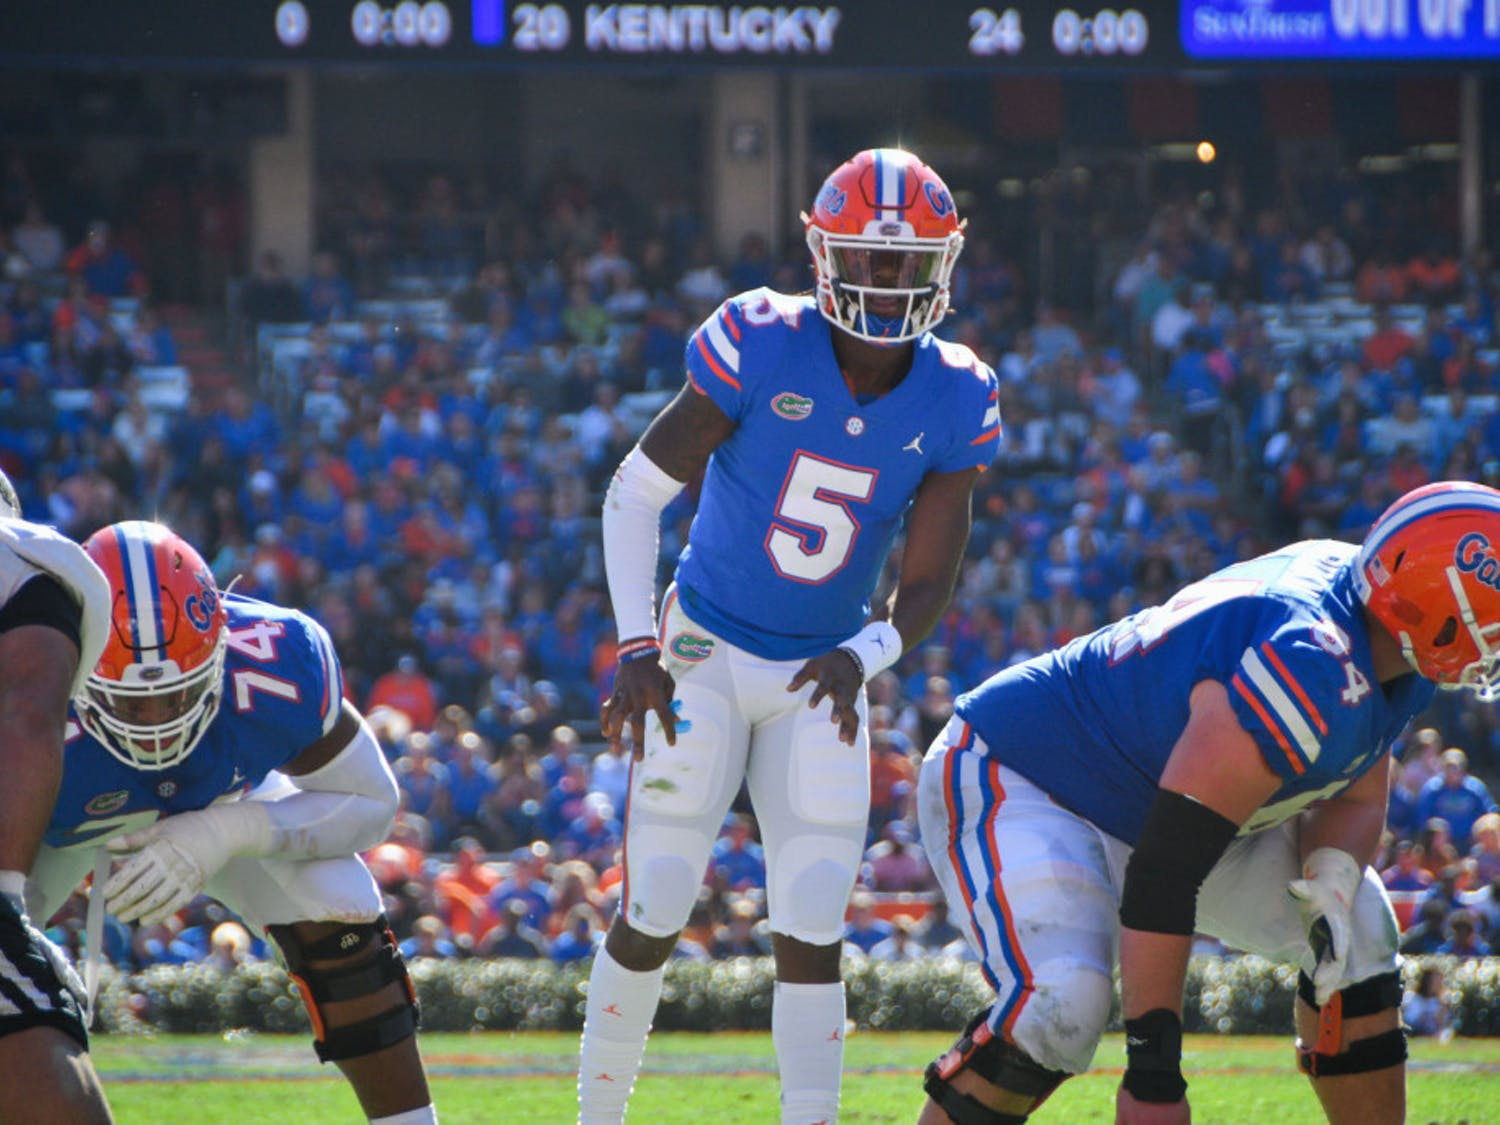 Freshman quarterback Emory Jones threw for 125 yards and two touchdowns on 12-of-16 passing in Florida's 63-10 victory over Idaho on Nov. 17, 2018.